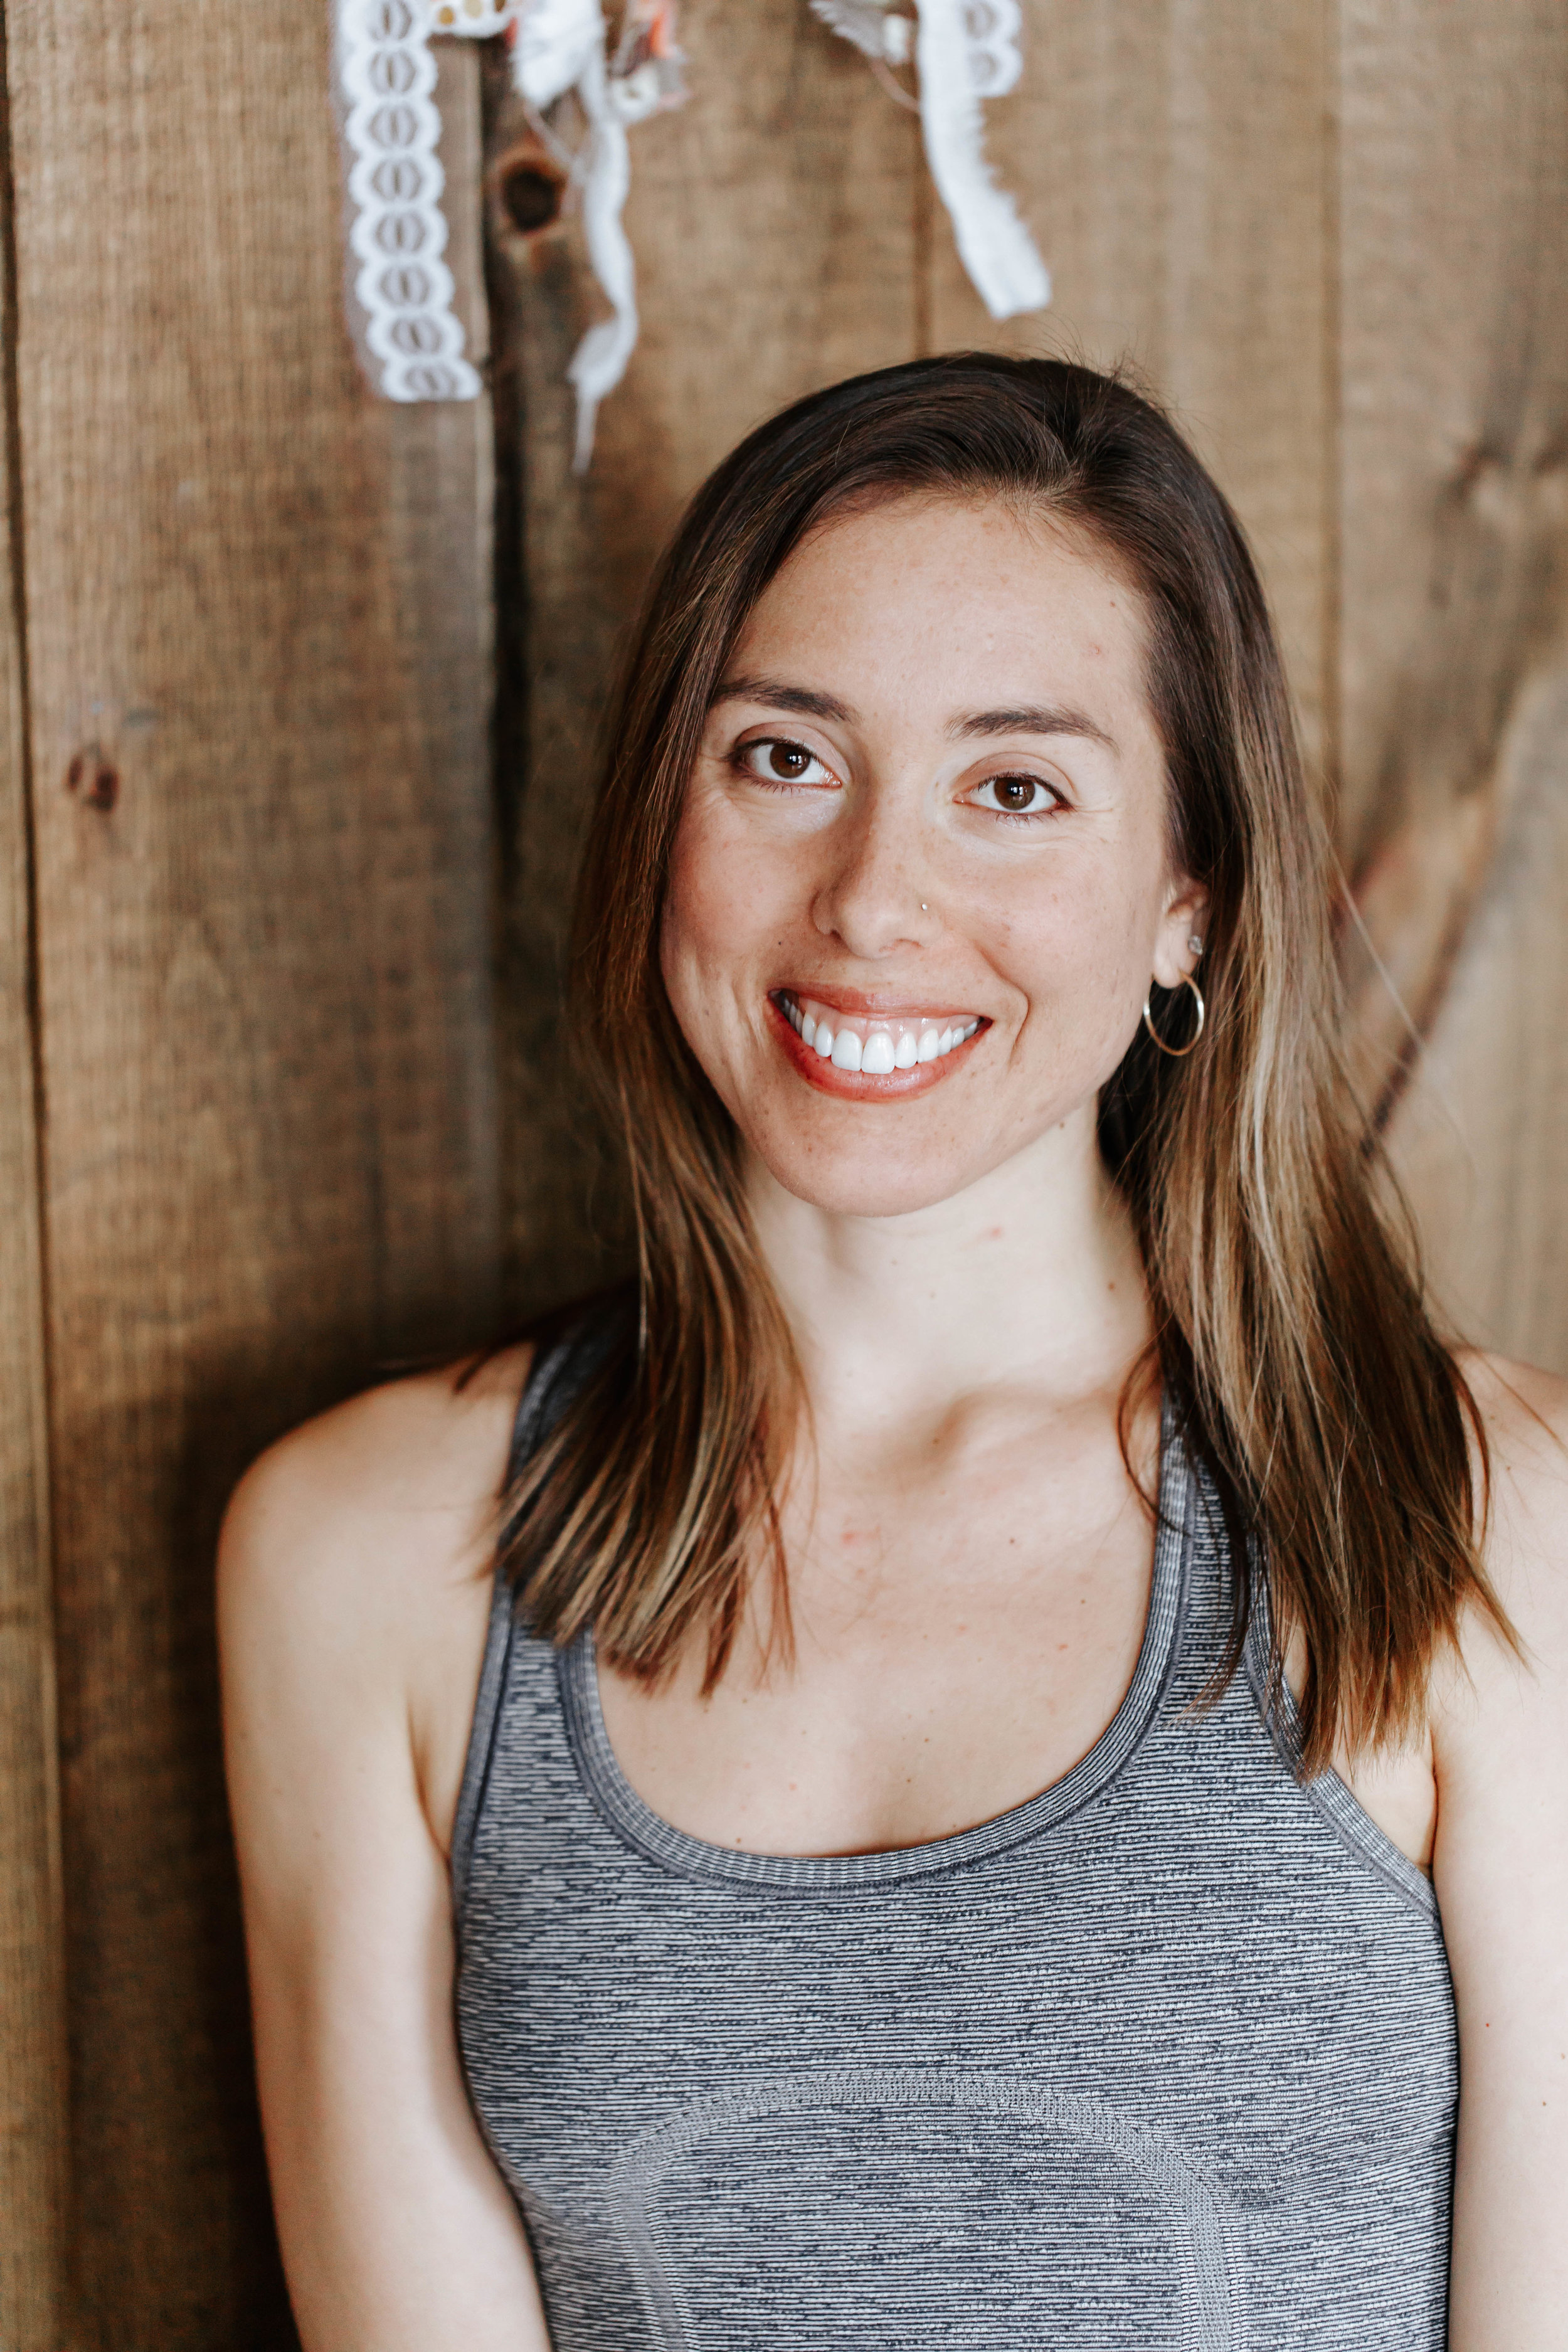 """Amy Gaster   Amy is a 500hr RYT Yoga Teacher and C-IAYT Yoga Therapist. She is so grateful to have begun her practice at the age of 18 and has not looked back since. Amy did her first 200-hr teacher training at Joschi Institute of Manhattan in 2013. Her early teaching days were very influenced by one of her first teachers, Gina Lee in Long Island, NY. The roots of her practice and teaching are in Vinyasa Yoga, a strong and integrative flow. Currently her practice and trainings have evolved into Yoga Therapy; a therapeutic, individualized variation to the practice. This approach to Yoga takes into account our unique situations and invites the practice to be molded to suit us, rather than us to suit the practice. In 2015, Amy began Yoga Therapy training with Inner Peace Yoga Therapy, based in Durango, CO. Learning under the guidance of senior teachers such as Neil Pearson, Maria Mendola, Dr. Marc Halpern, Nischala Joy Devi , Amy Weintraub, Laura Kupperman, and Michele Lawerence. It is her passion and privilege to have worked with many individuals over the past 4 years and to watch the impact Yoga has on their physical, emotional, and spiritual well-being.  """"With great respect and honor, I hold space for the person in front of me with an approach based in: intuition, empathy, and research and information gathering in order to better understand their limitations and needs. I am truthful in what I know and do not know so that I can design a practice that meets them where they are at and helps bring them to where they want to go, including meditation, mindfulness, relaxation, mudras, breath work, and asana (Yoga postures). I believe the mindful and multi-faceted approach of Yoga provides an opportunity for us to accept life exactly as it is at this very moment, finding joy and peace in every single day, no matter our circumstances. """"  Yoga has helped Amy soothe and heal anxiety and physical discomfort. Being a Yoga Therapist has bridged her passion for Yoga and purposeful"""